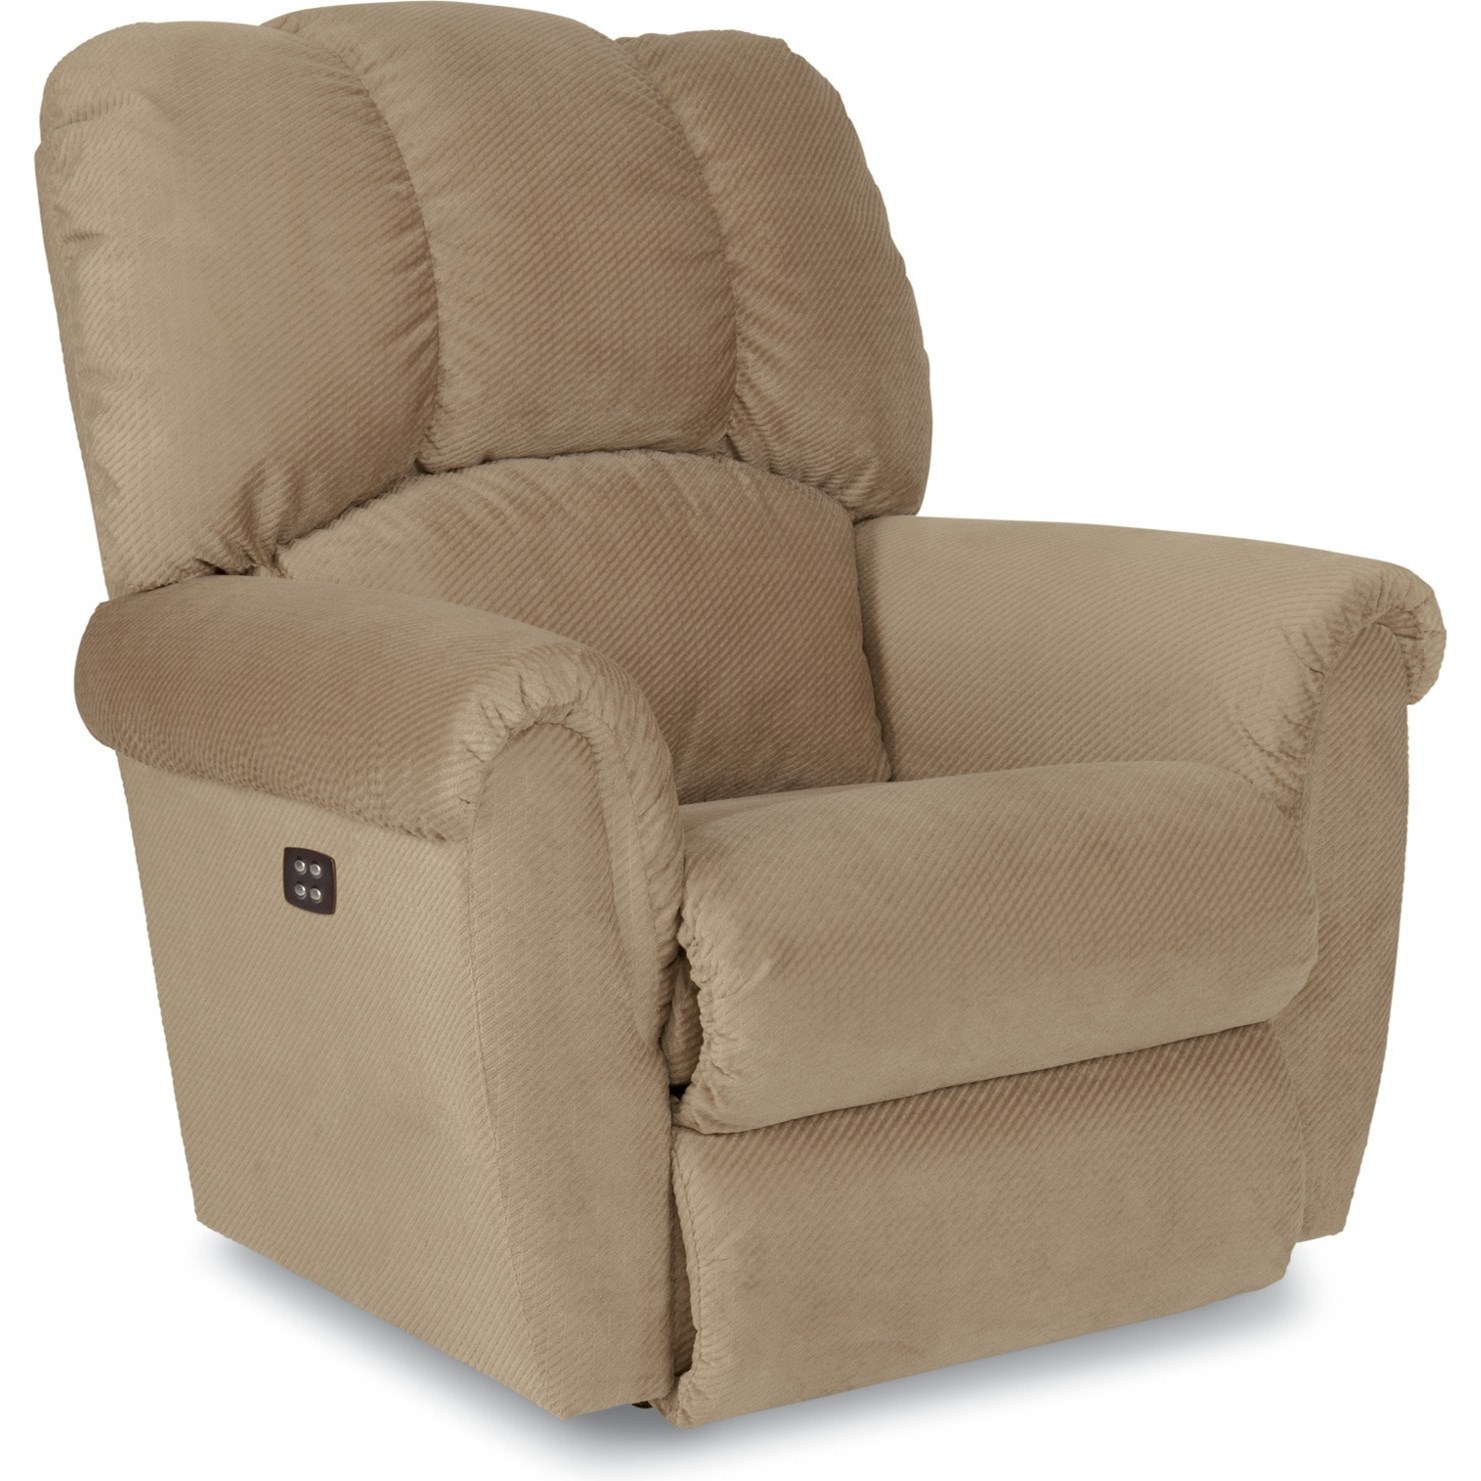 Recliners Power Rocking Recliner by La-Z-Boy at Sparks HomeStore